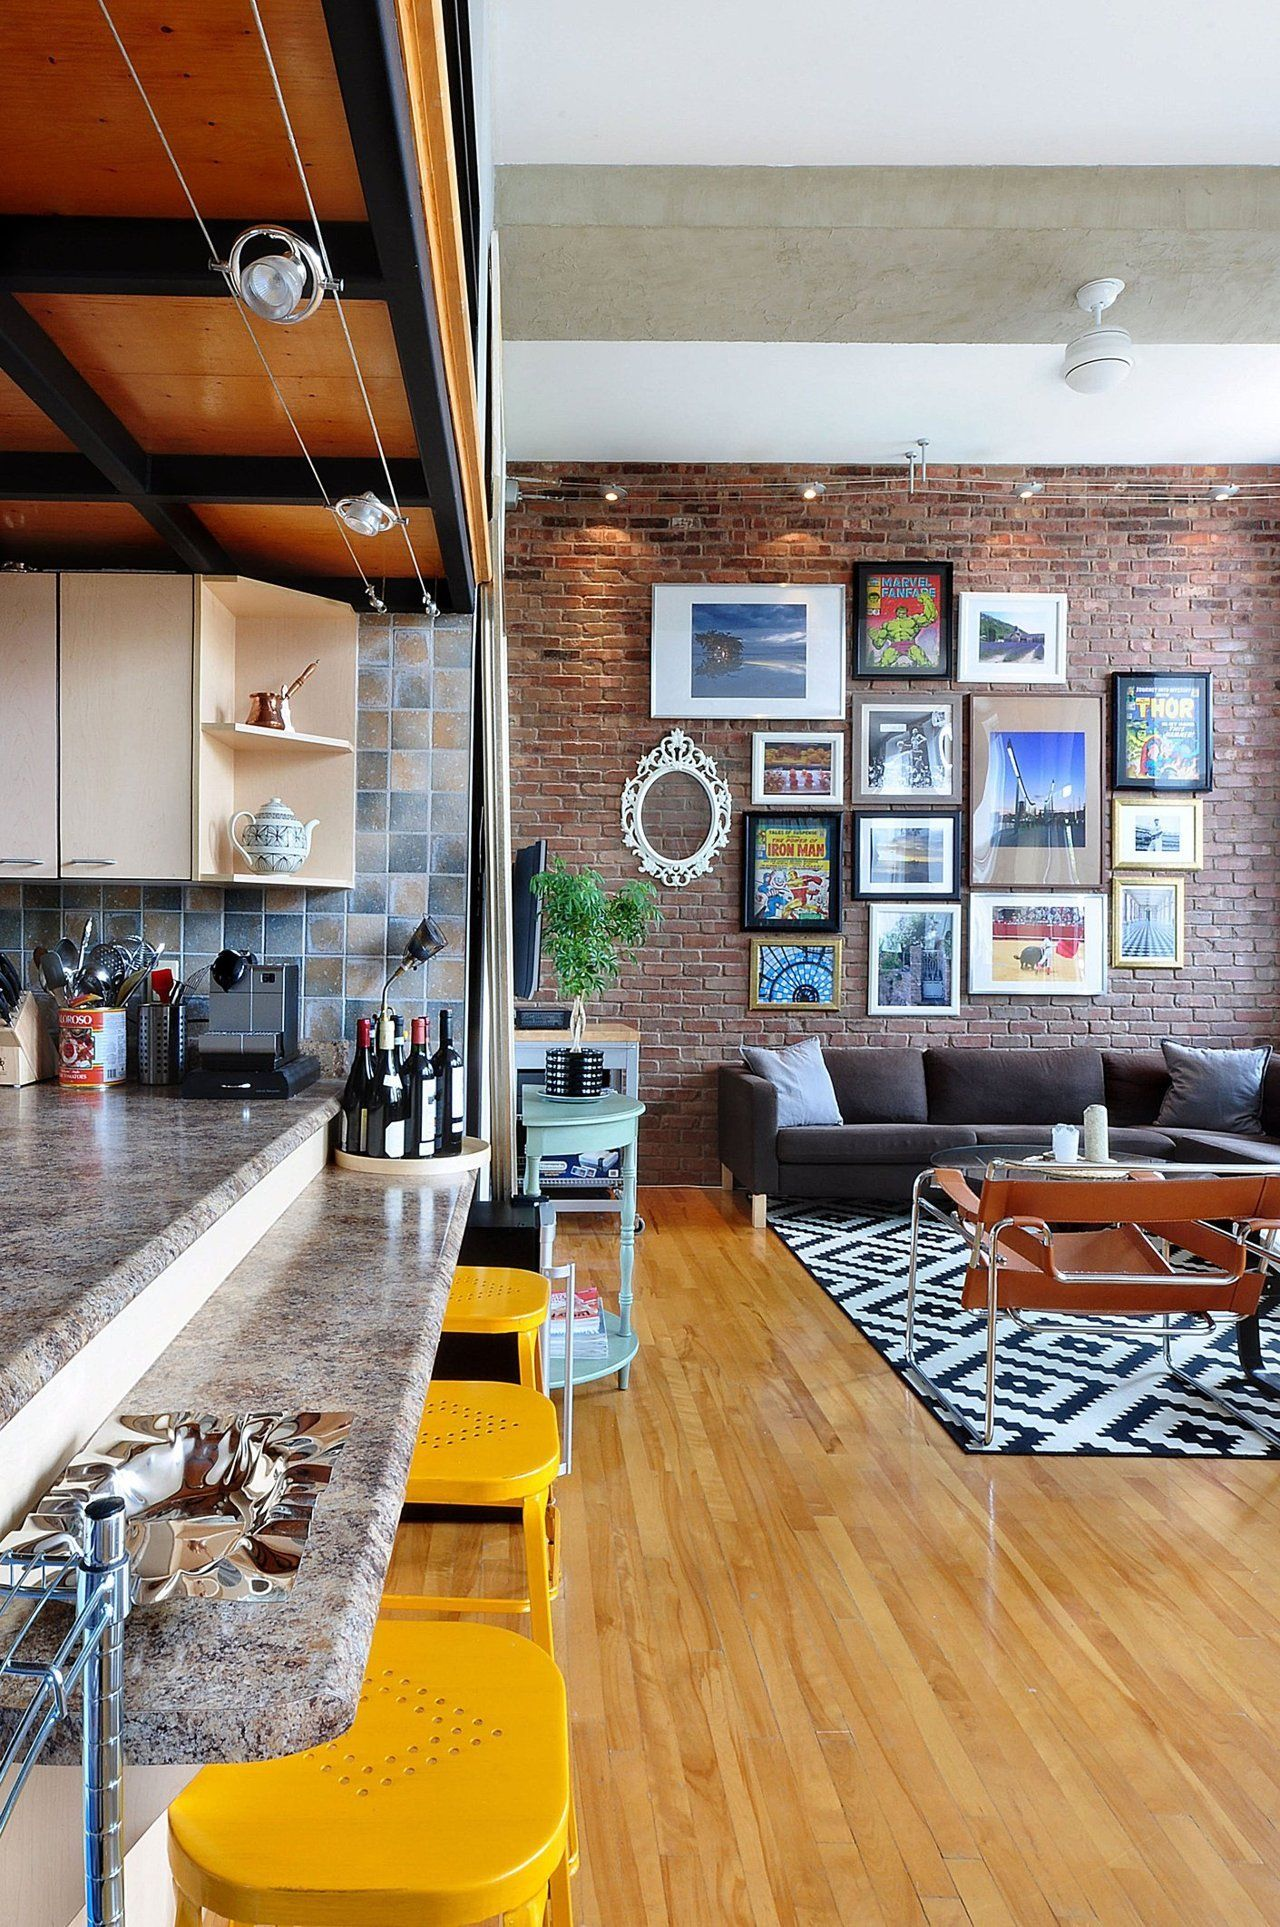 Elegant Hip, Patterned, Industrial Style In A Montreal Loft